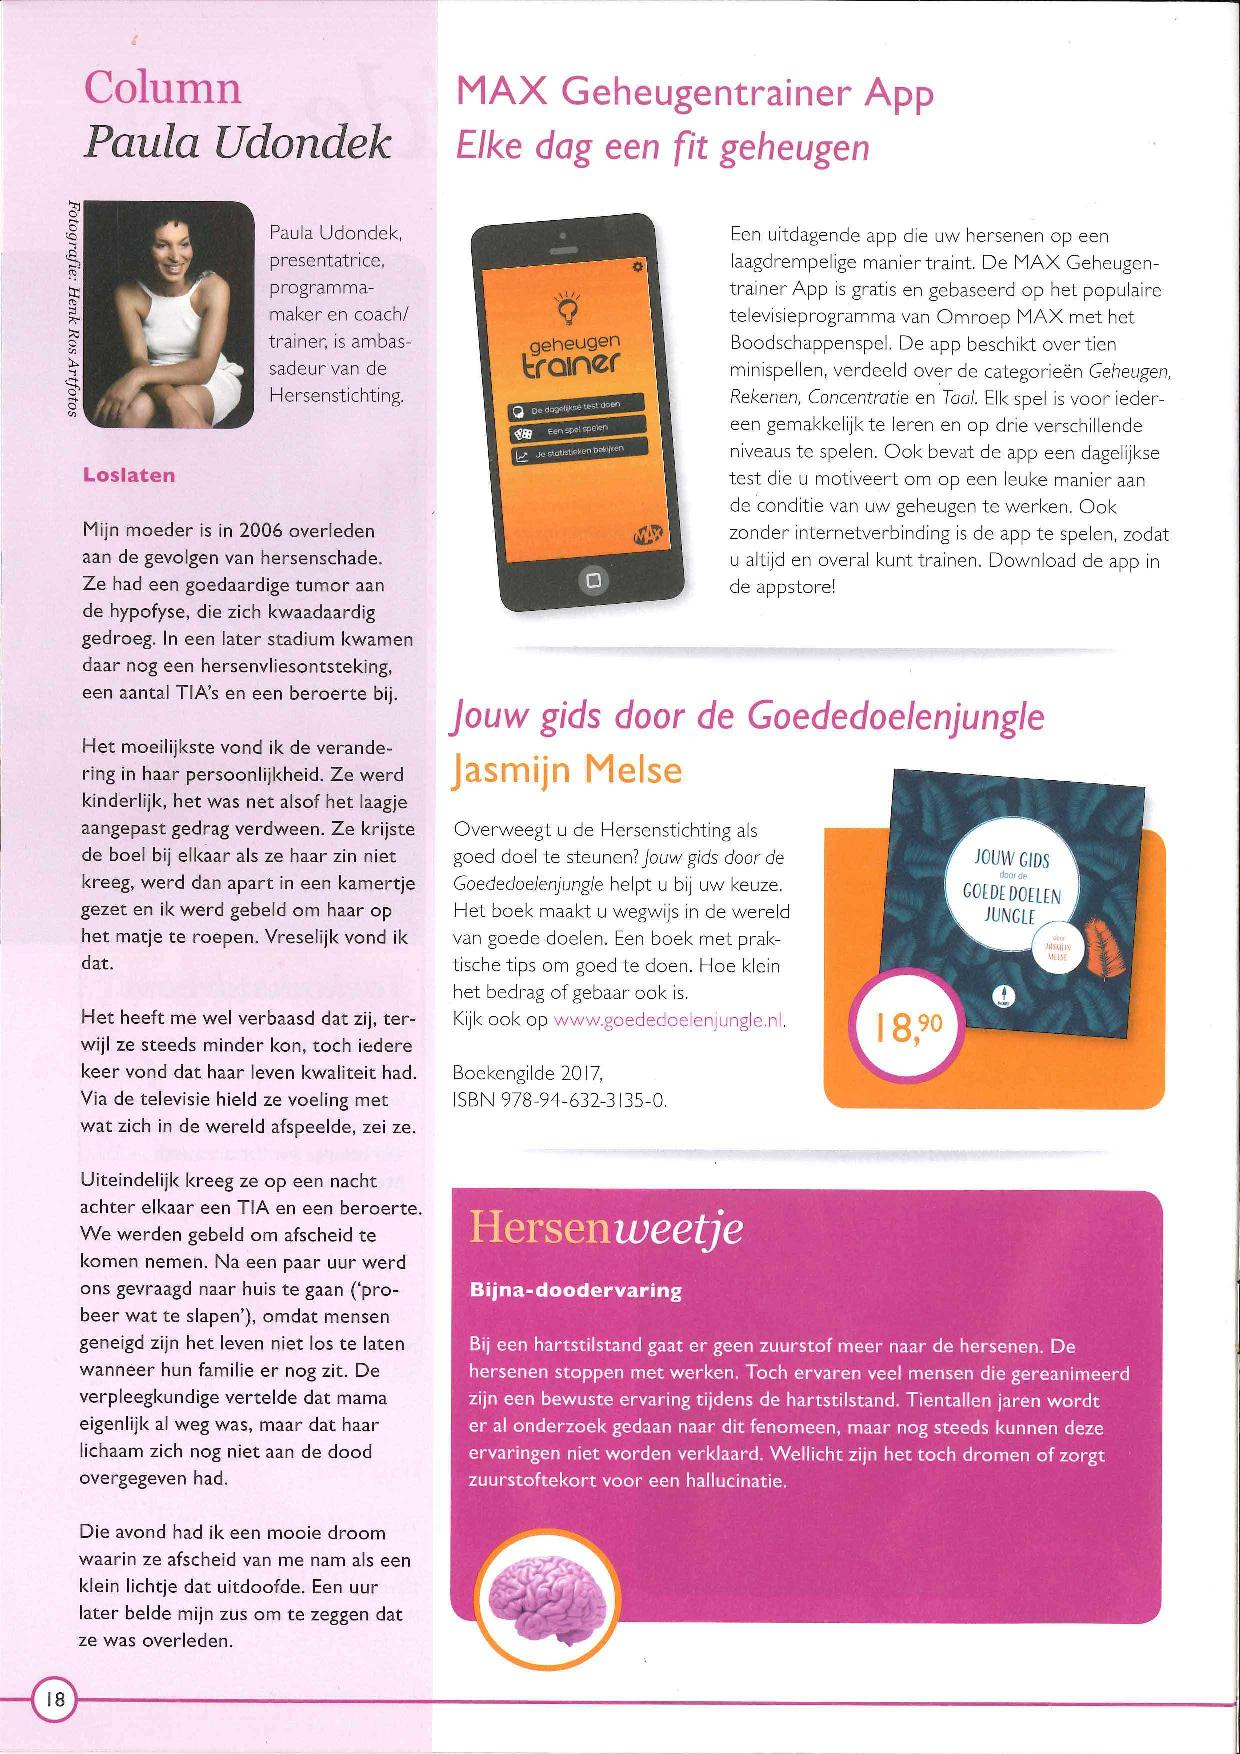 Goededoelenjungle in Hersen Magazine